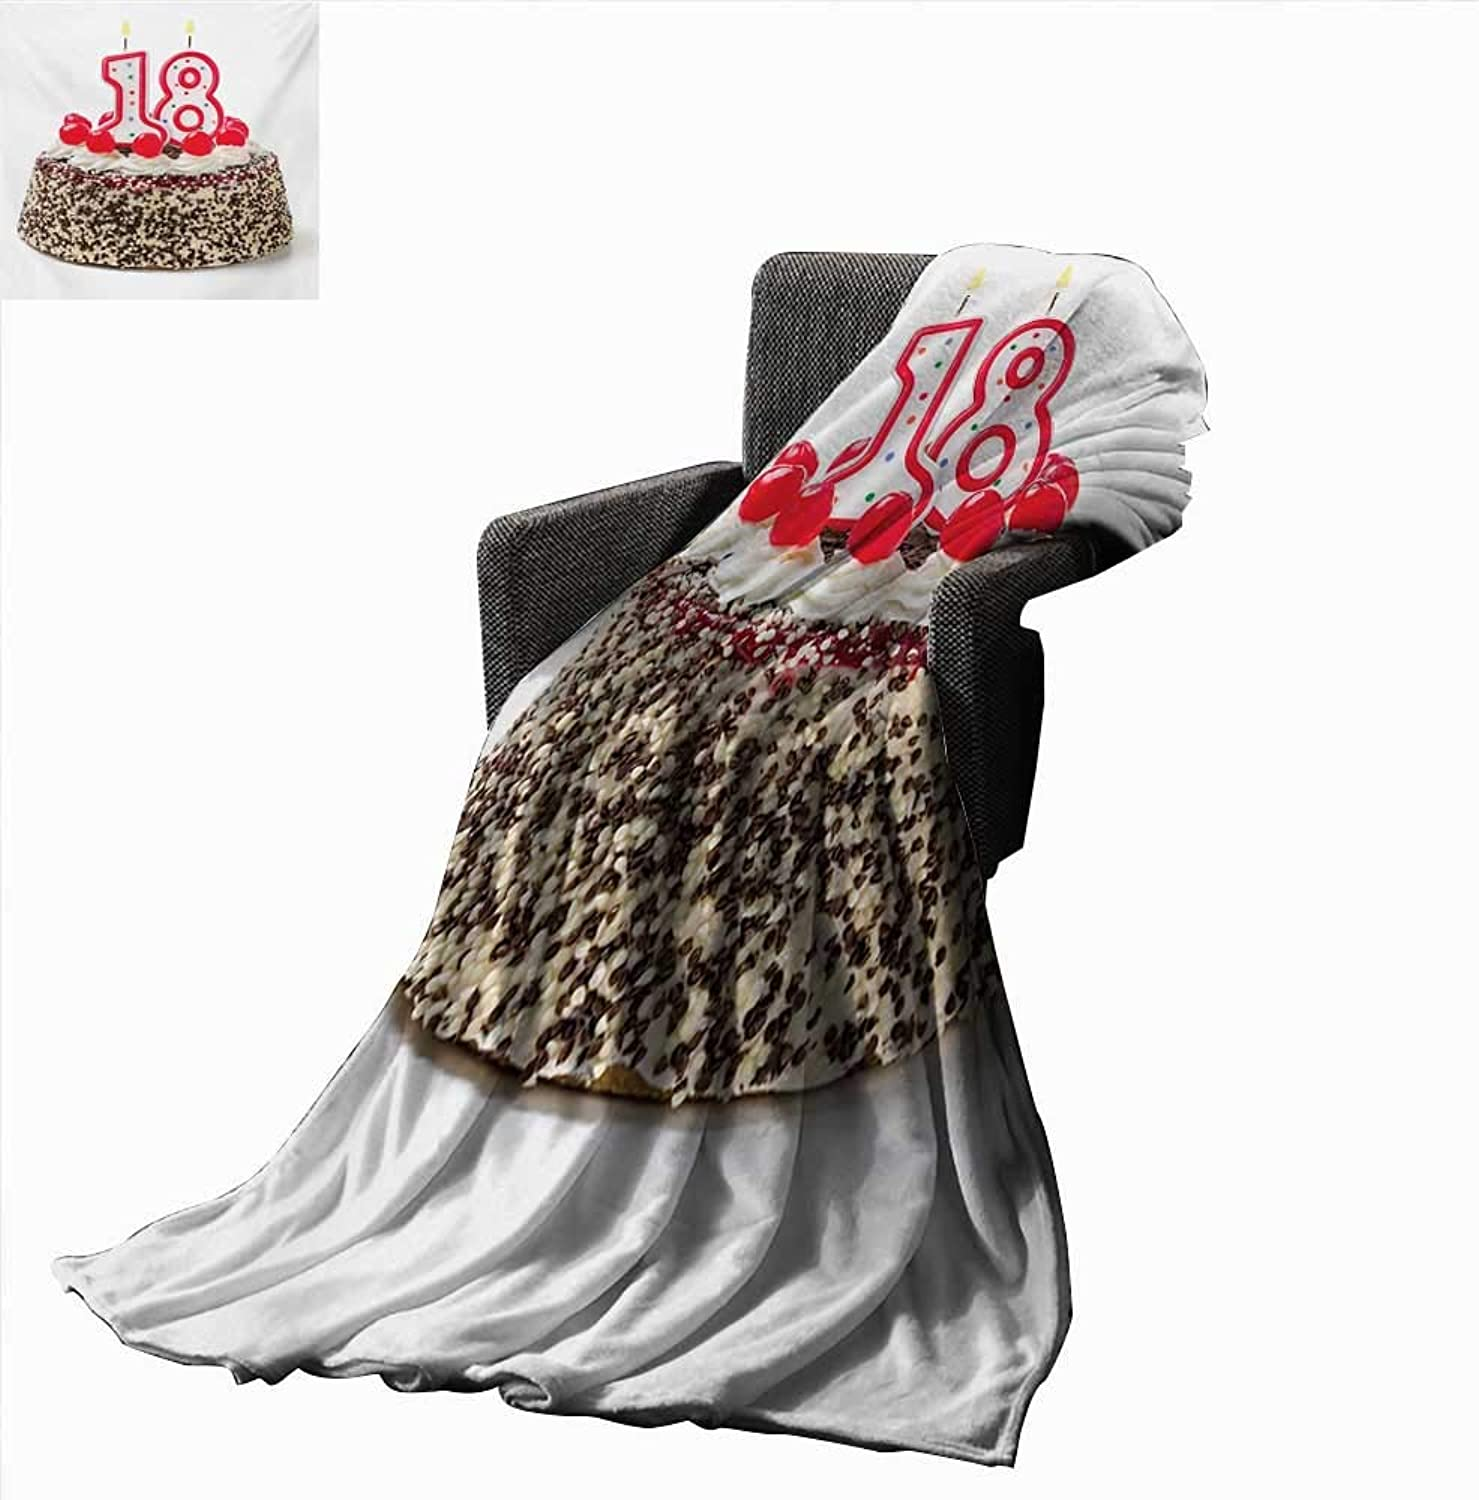 Anyangeight 18th Birthday Digital Printing Blanket Sweet Eighteen Party Cake with Candles and Cherries Sprinkle Vibrant Photo 60 x50 ,Super Soft and Comfortable,Suitable for Sofas,Chairs,beds